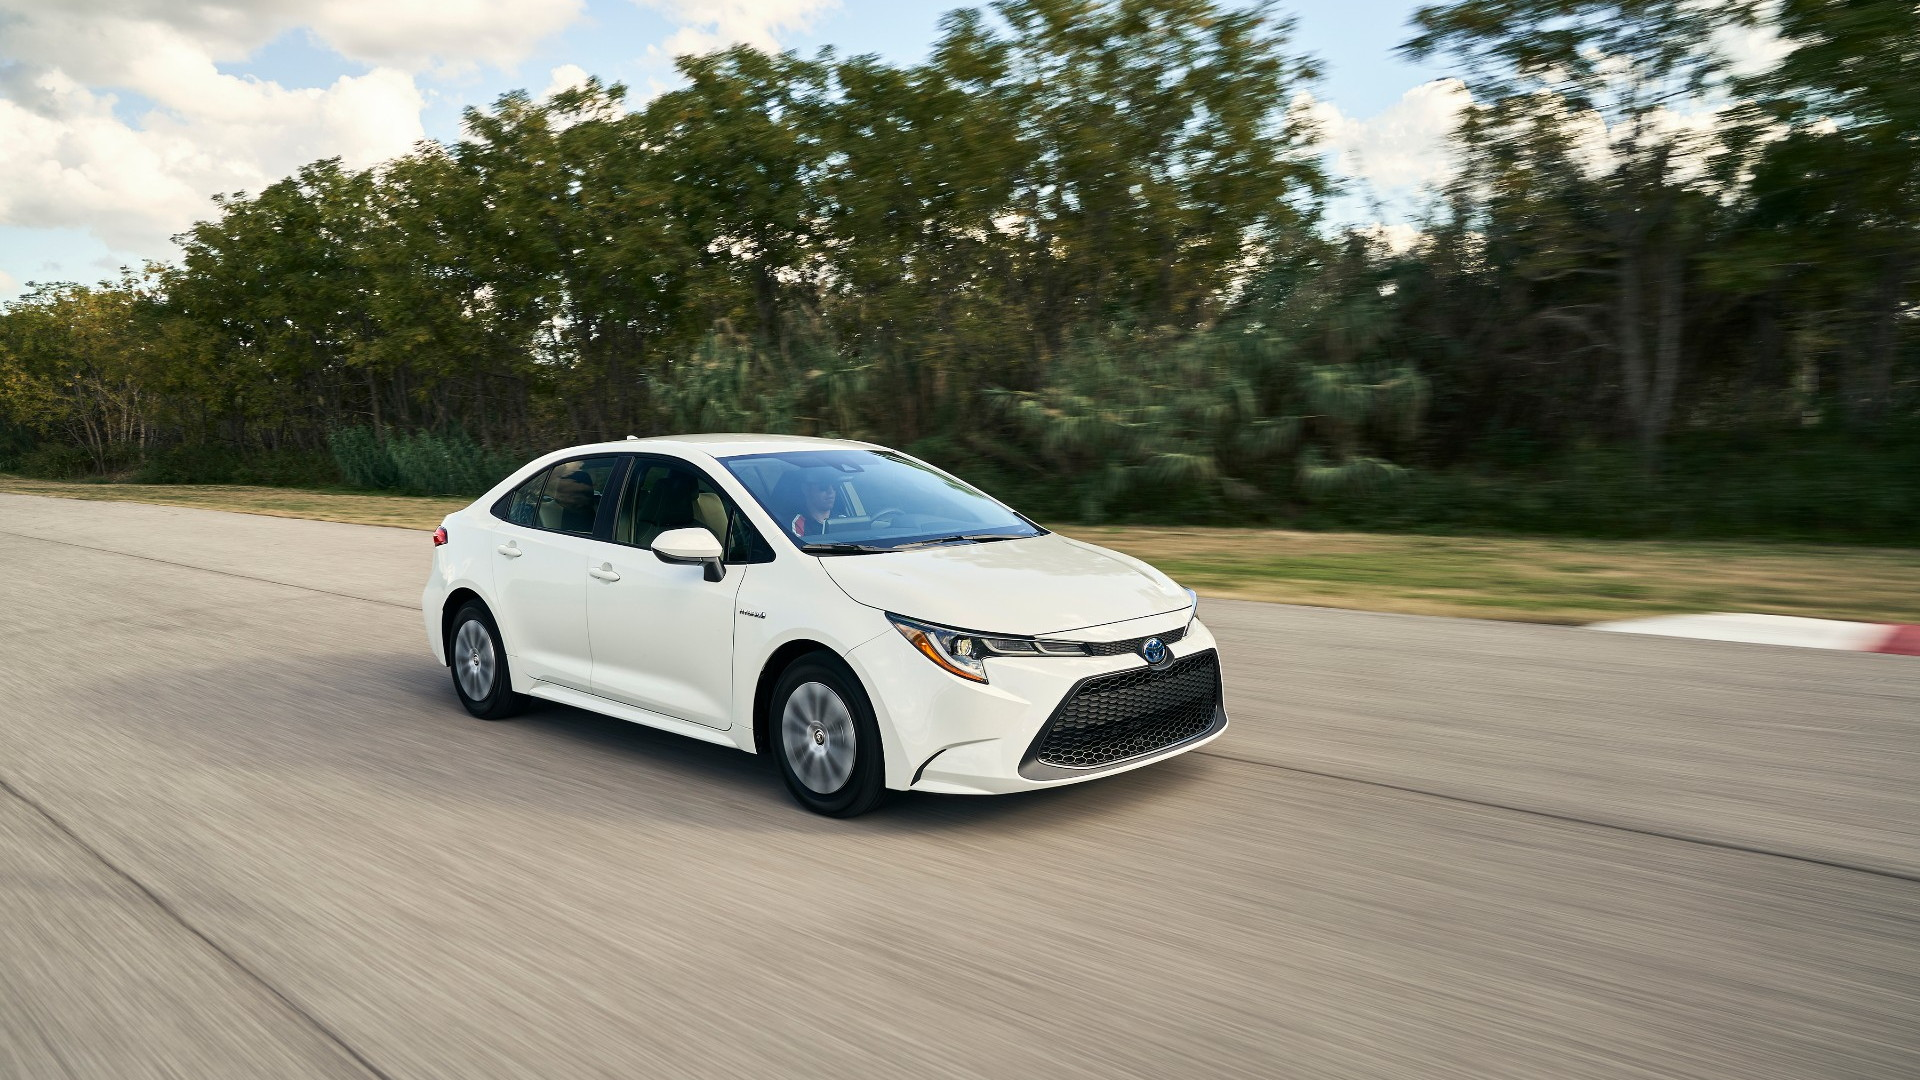 2020 toyota corolla hybrid aims for 50 mpg prius tech meets frugal mainstream 2020 toyota corolla hybrid aims for 50